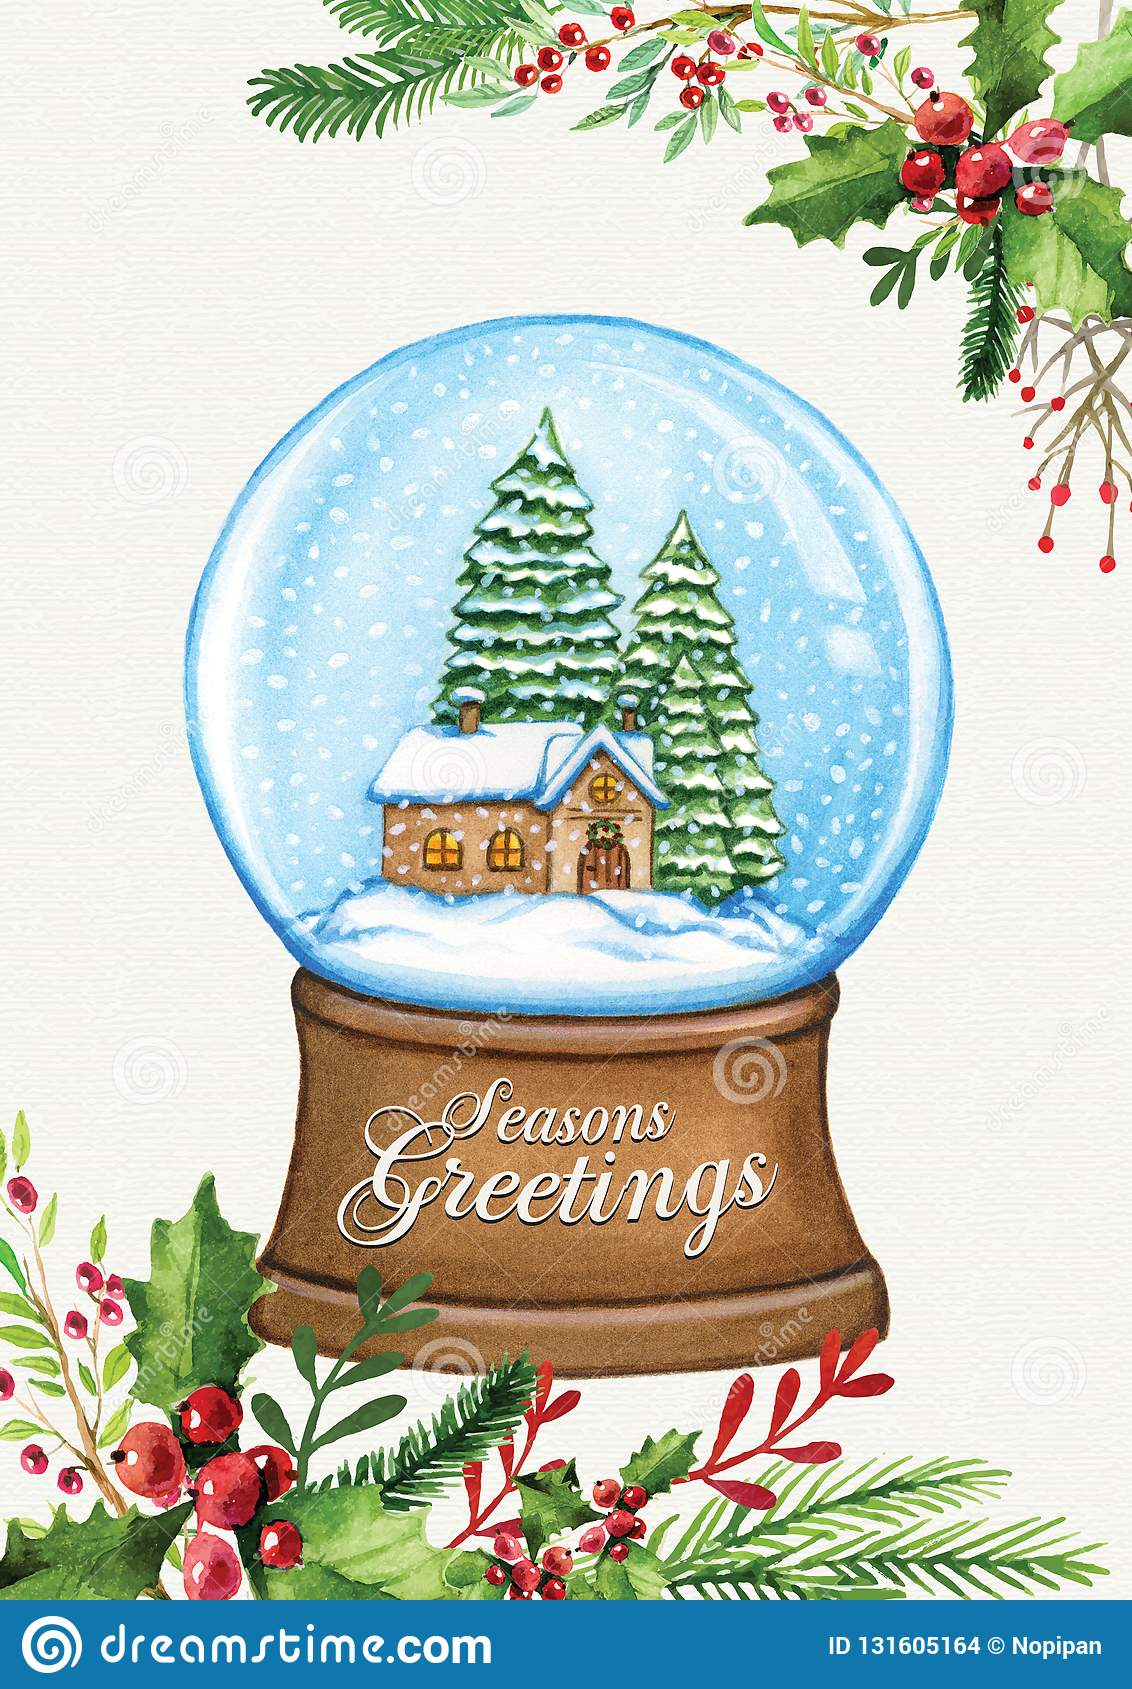 Christmas In Evergreen Snow Globe.Christmas Greeting Card With Snow Globe House Pine Trees